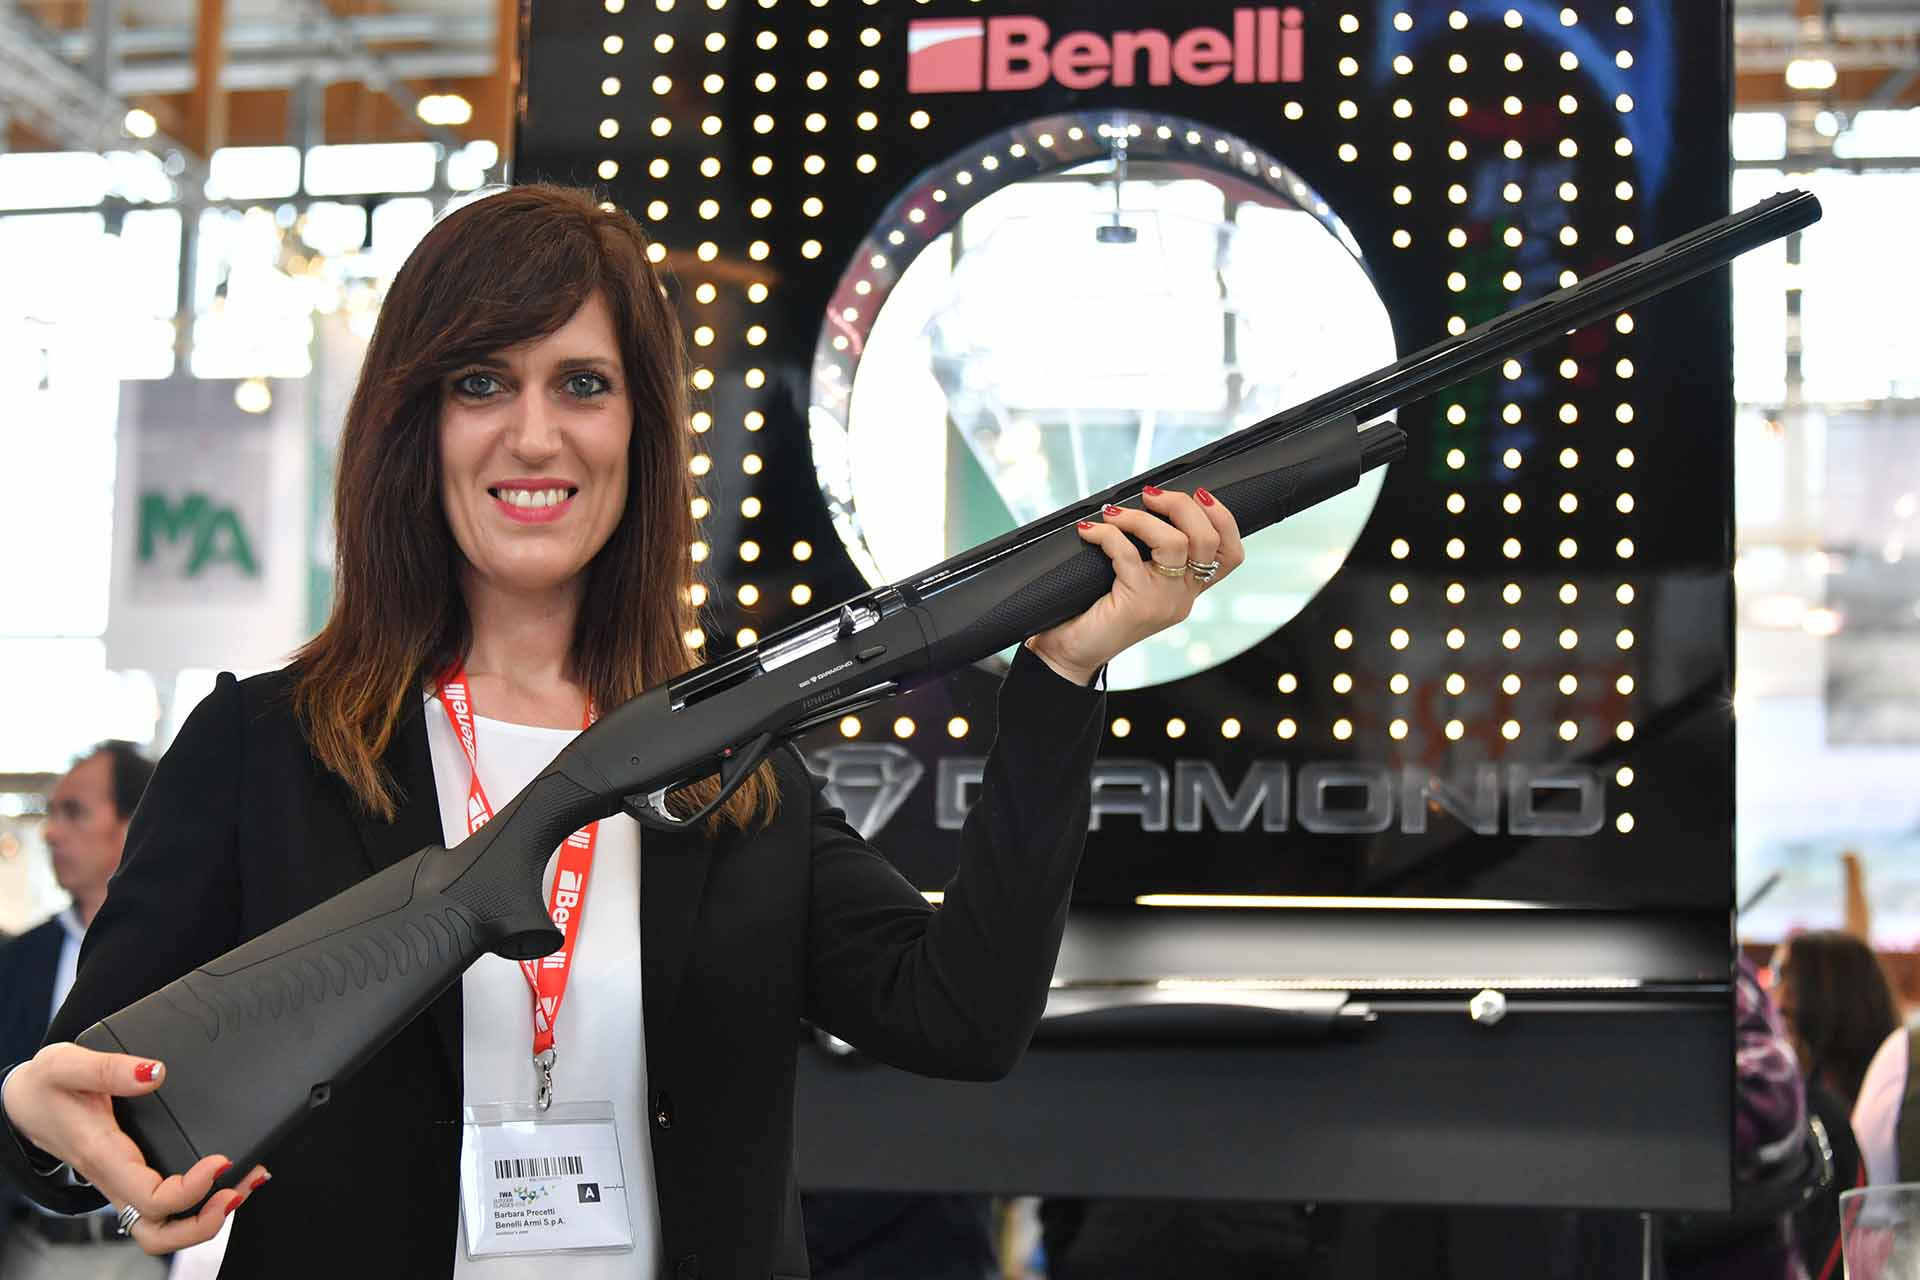 Benelli Raffaello Be Diamond semiautomatic 12 gauge shotgun at IWA 2018